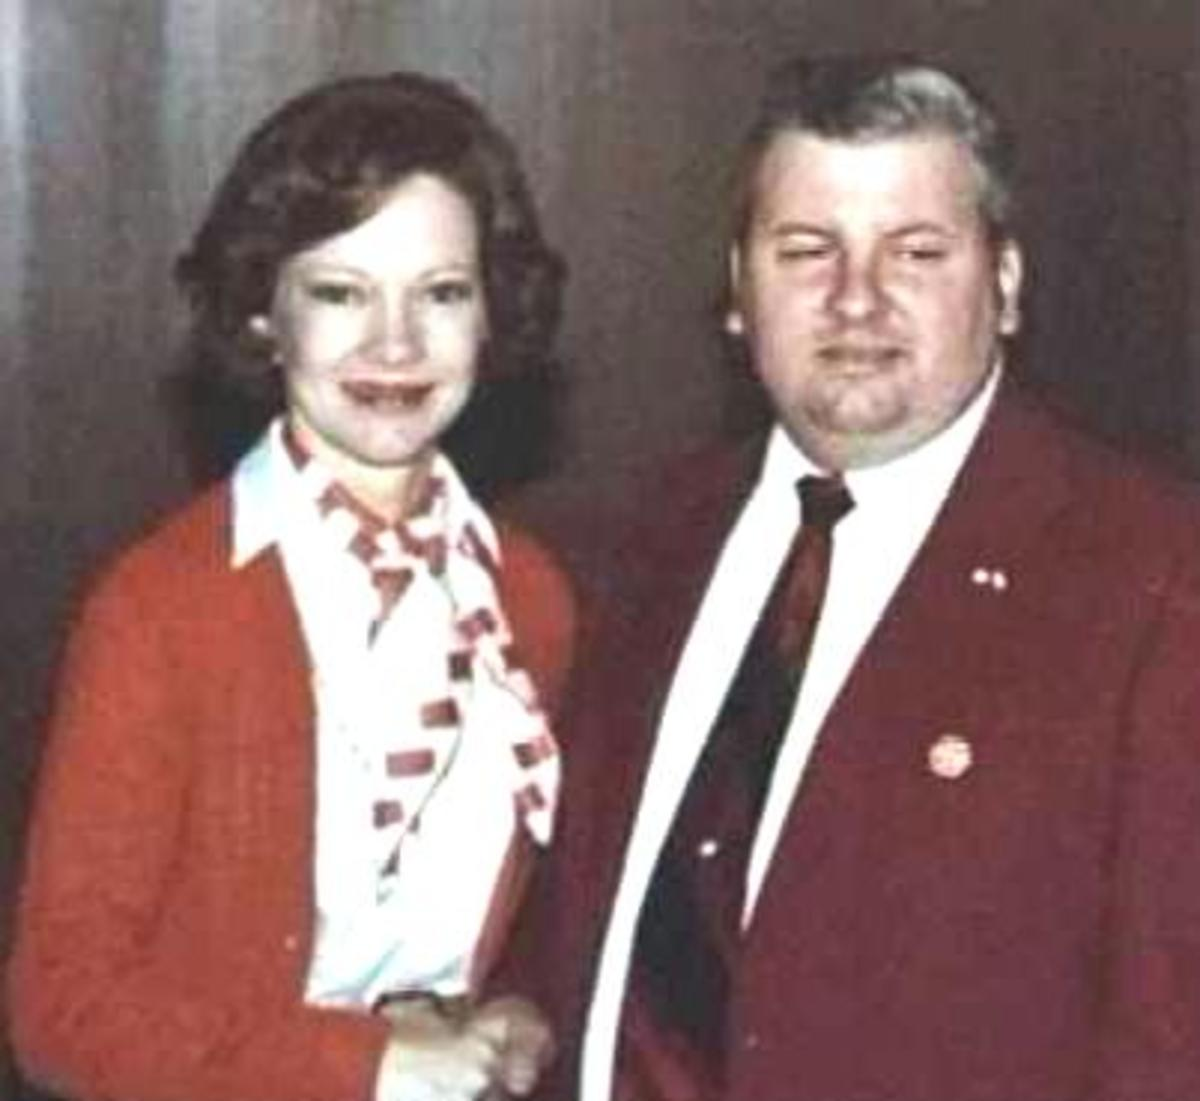 15 Facts You Probably Didn't Know About the John Wayne Gacy Case